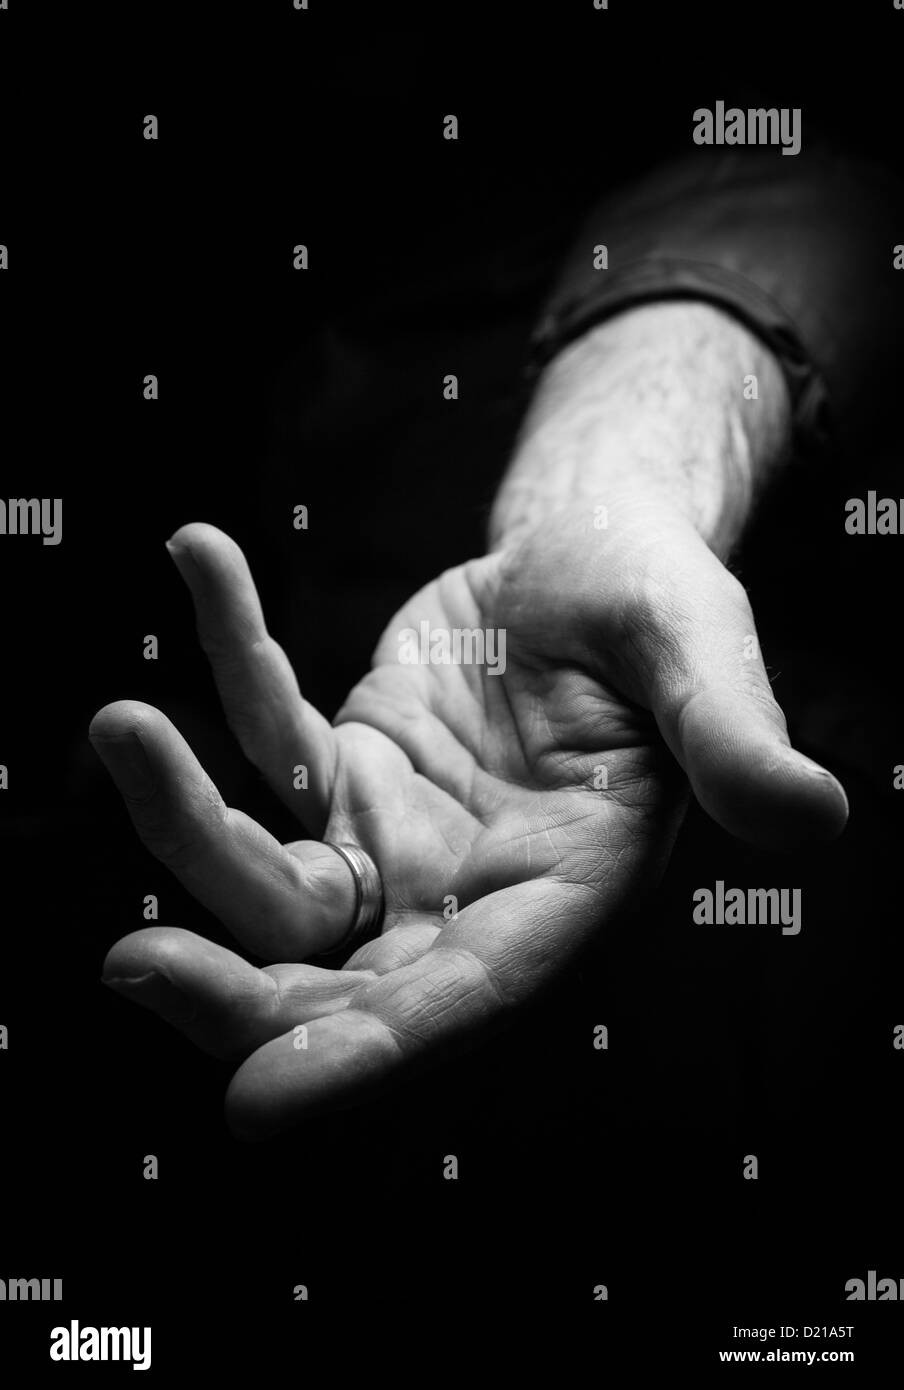 A hand reaching out to help someone. - Stock Image